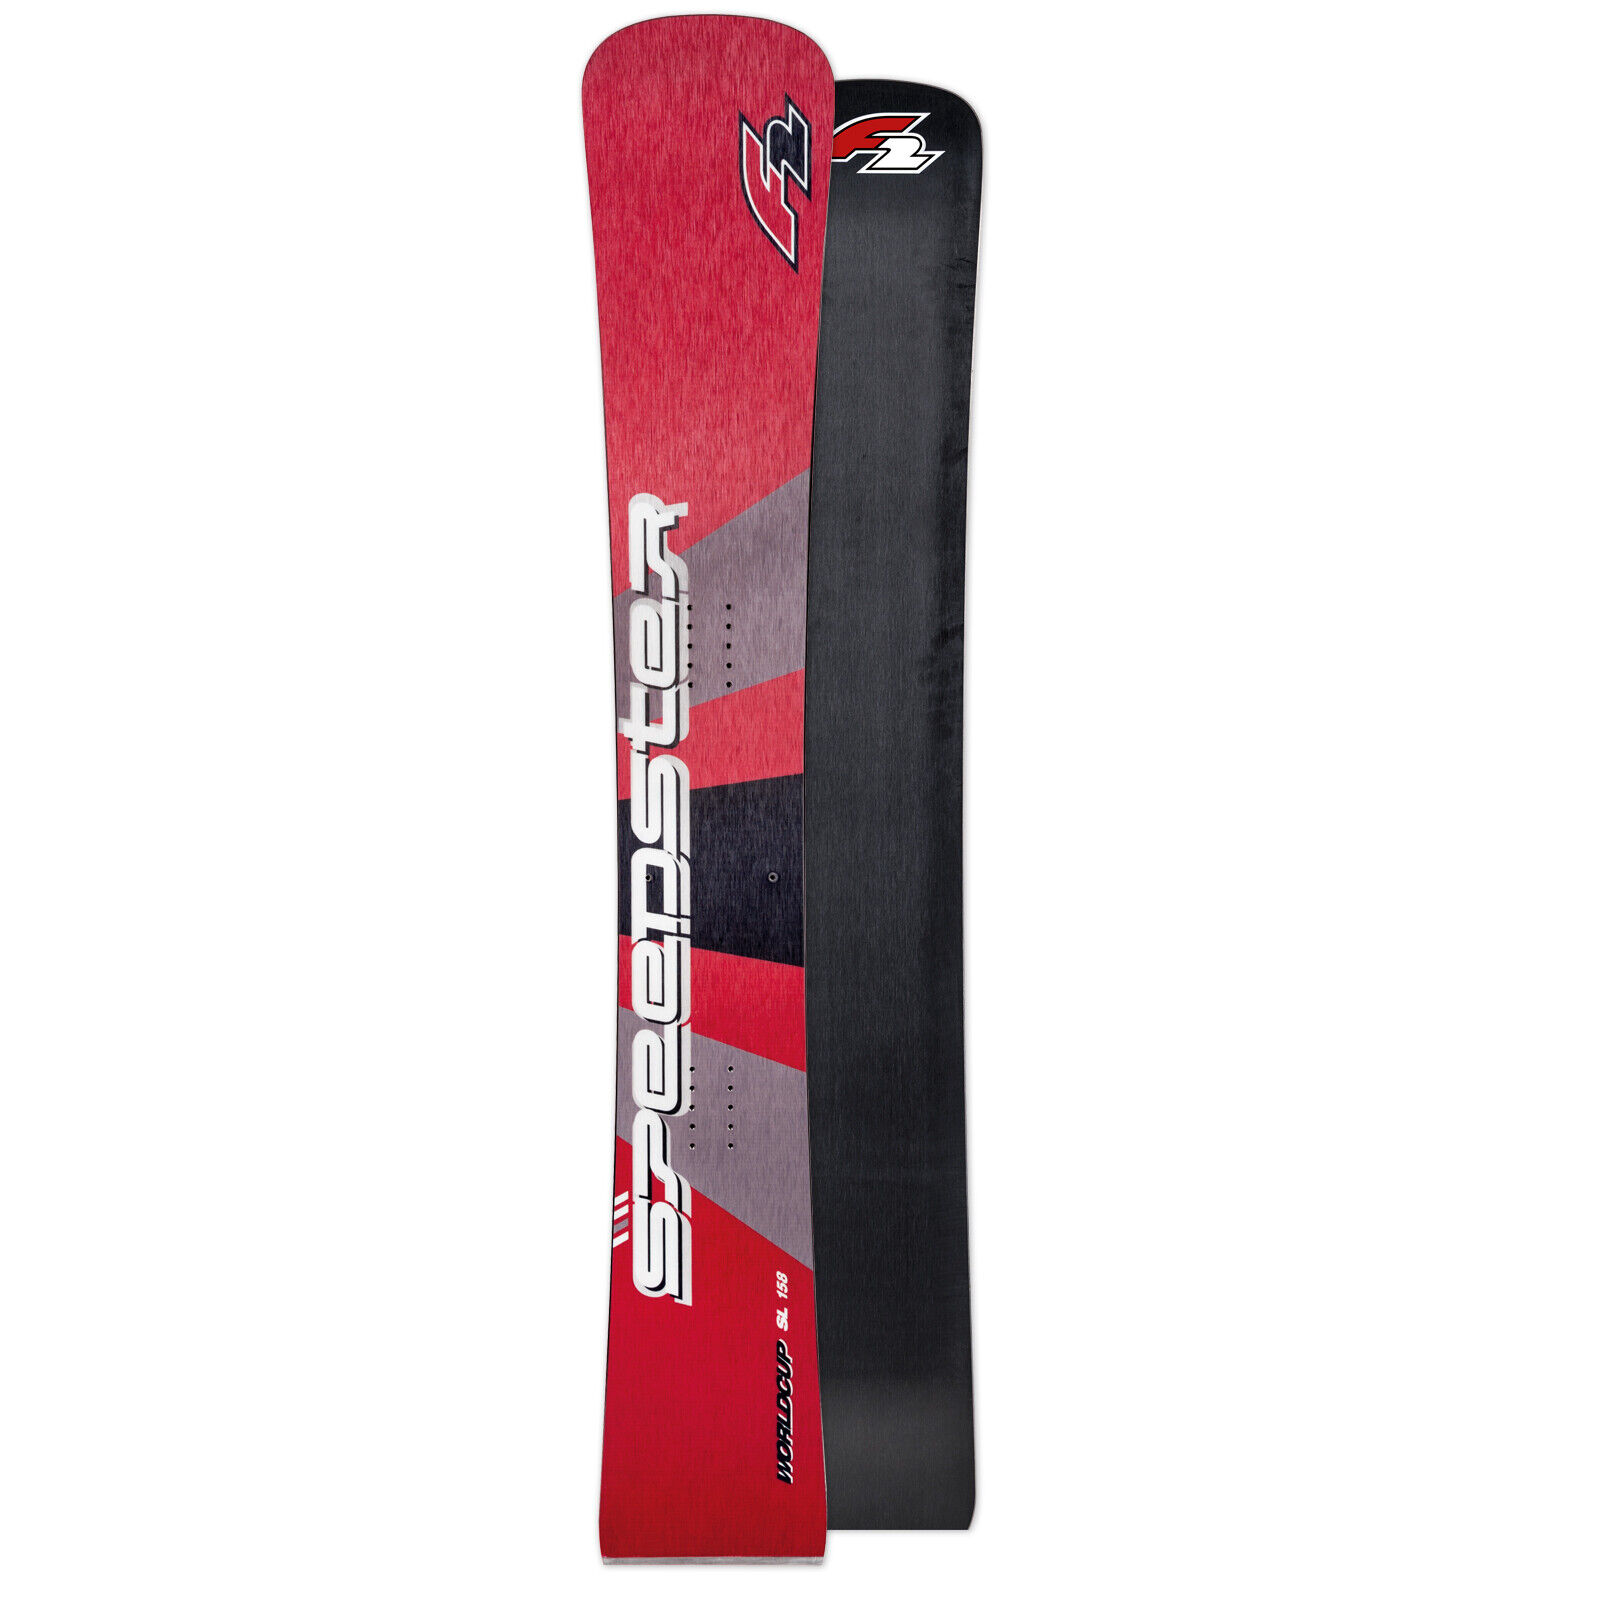 ALPIN RACE SNOWBOARD - F2 SPEEDSTER WORLD CUP WC SL 2019  158 CM - 2. WAHL